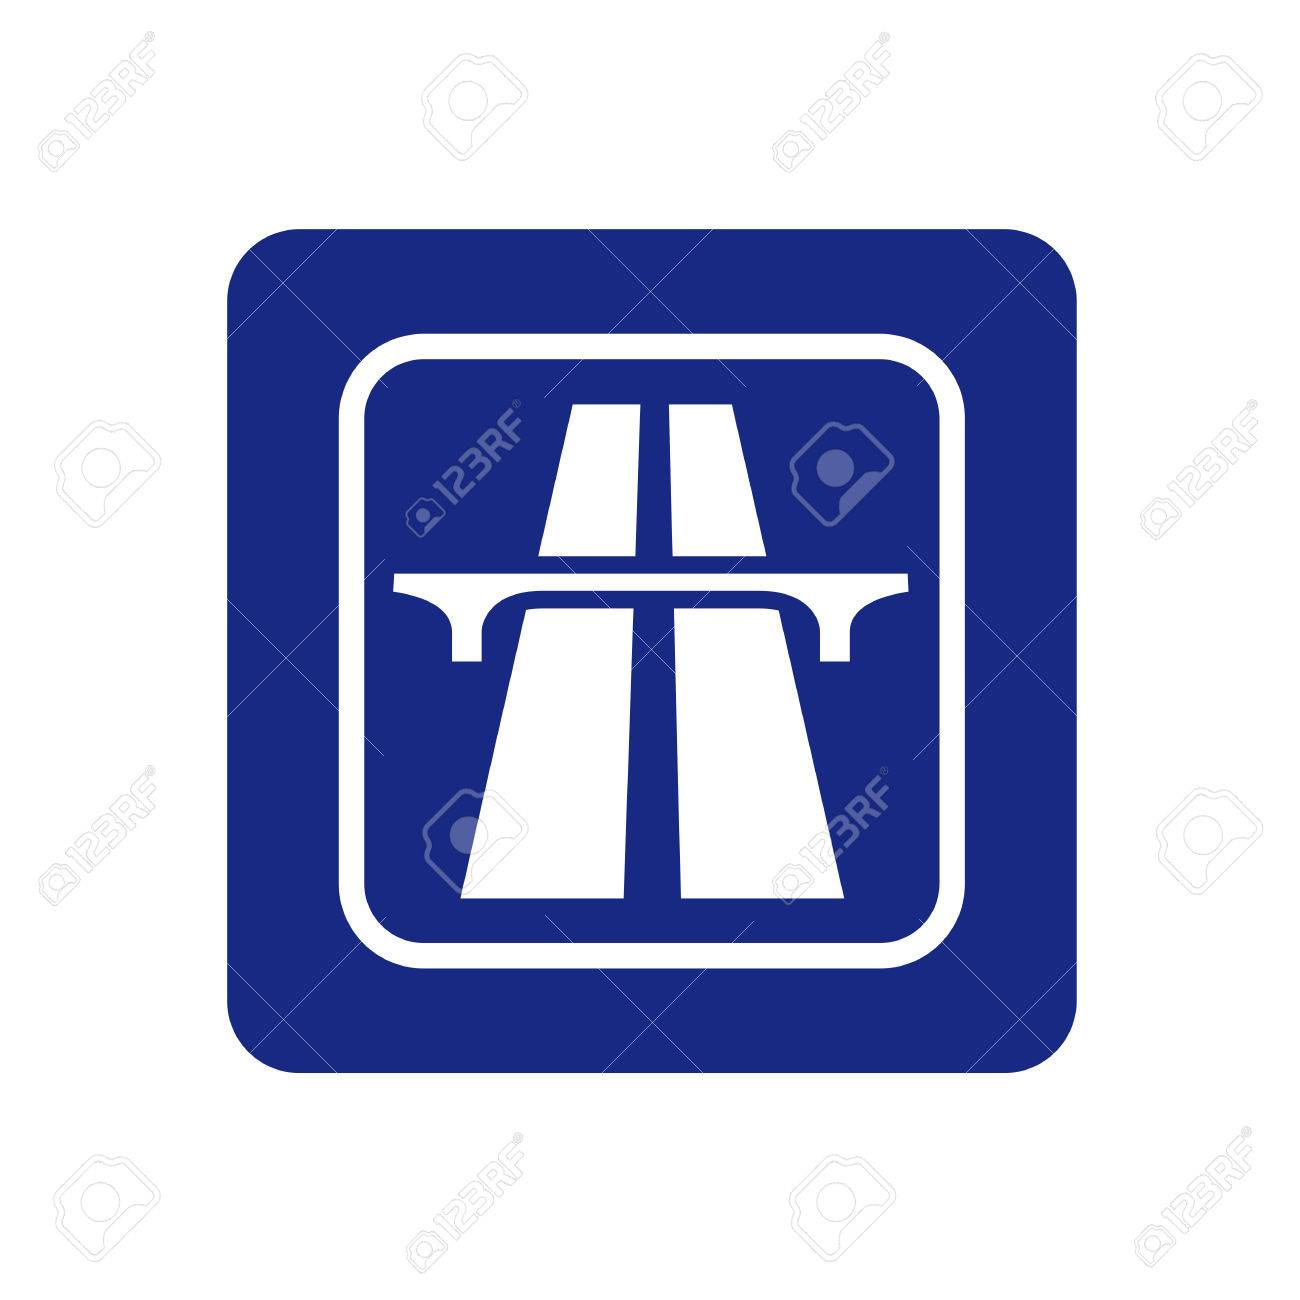 highway sign for map royalty free cliparts vectors and stock rh 123rf com california highway sign vector highway road sign vector